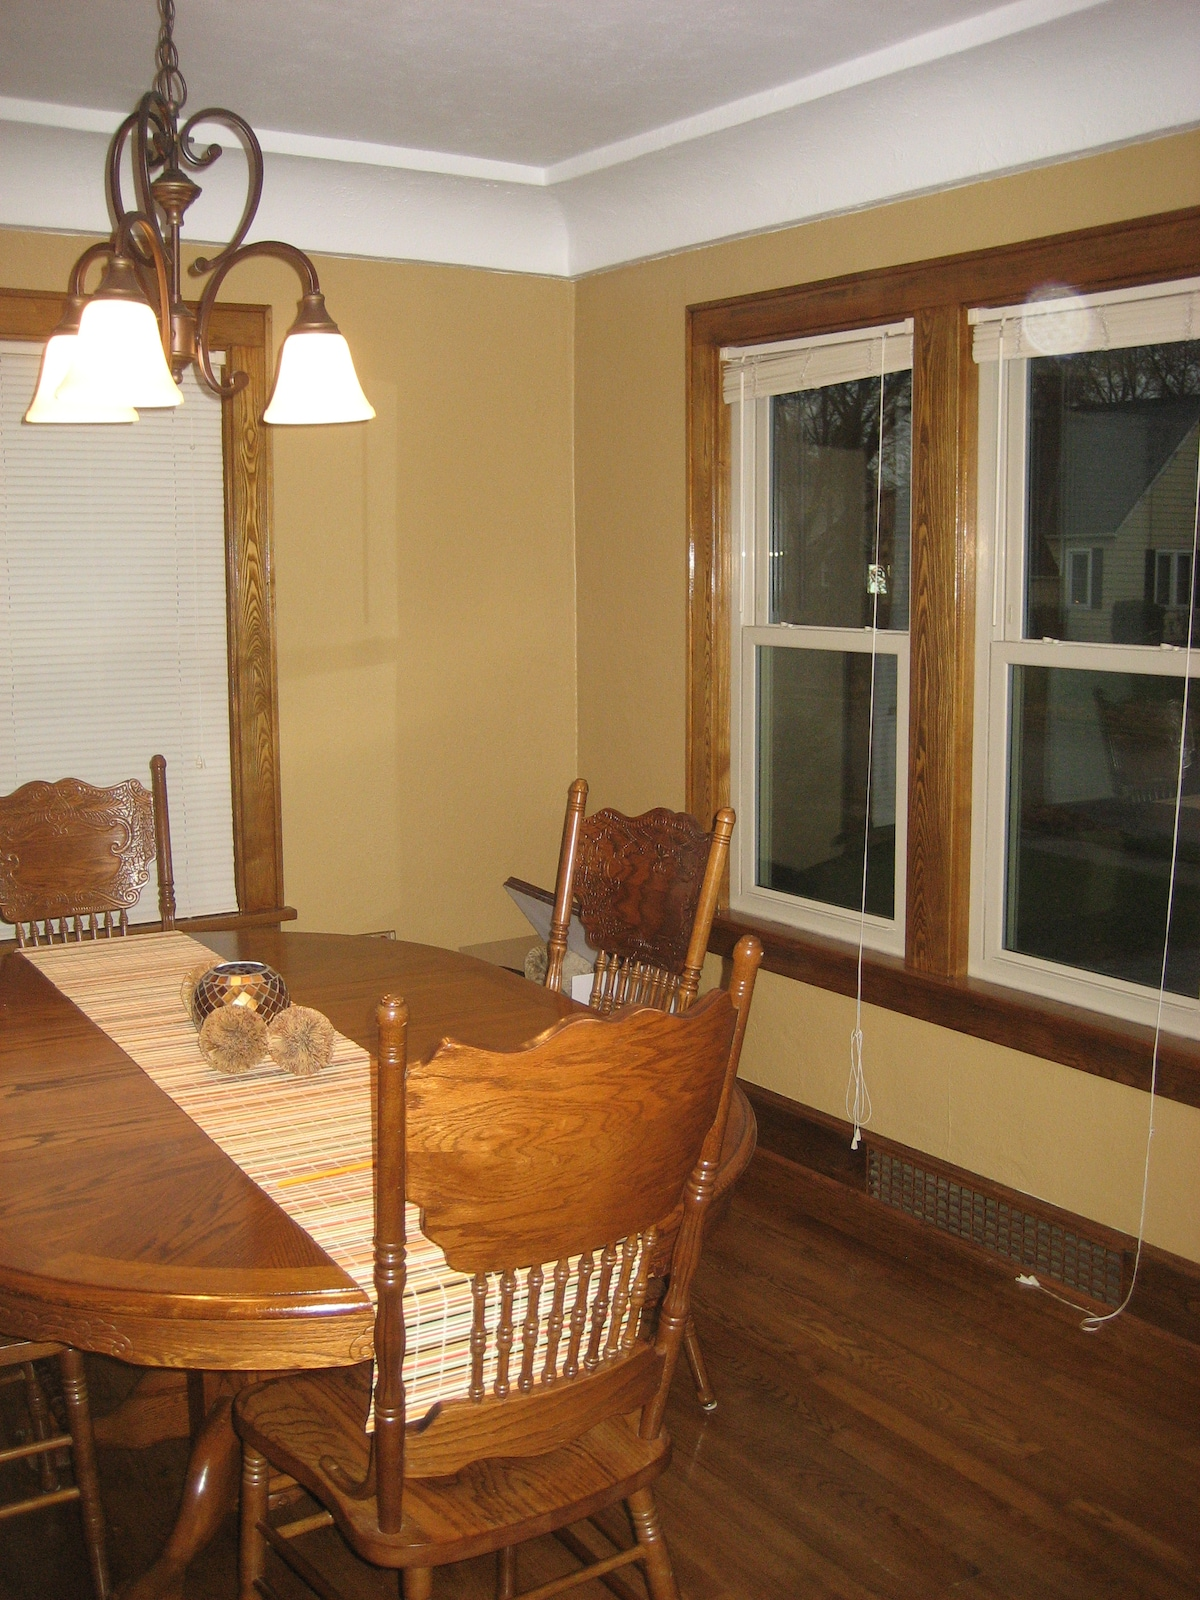 Dining room - view #2.